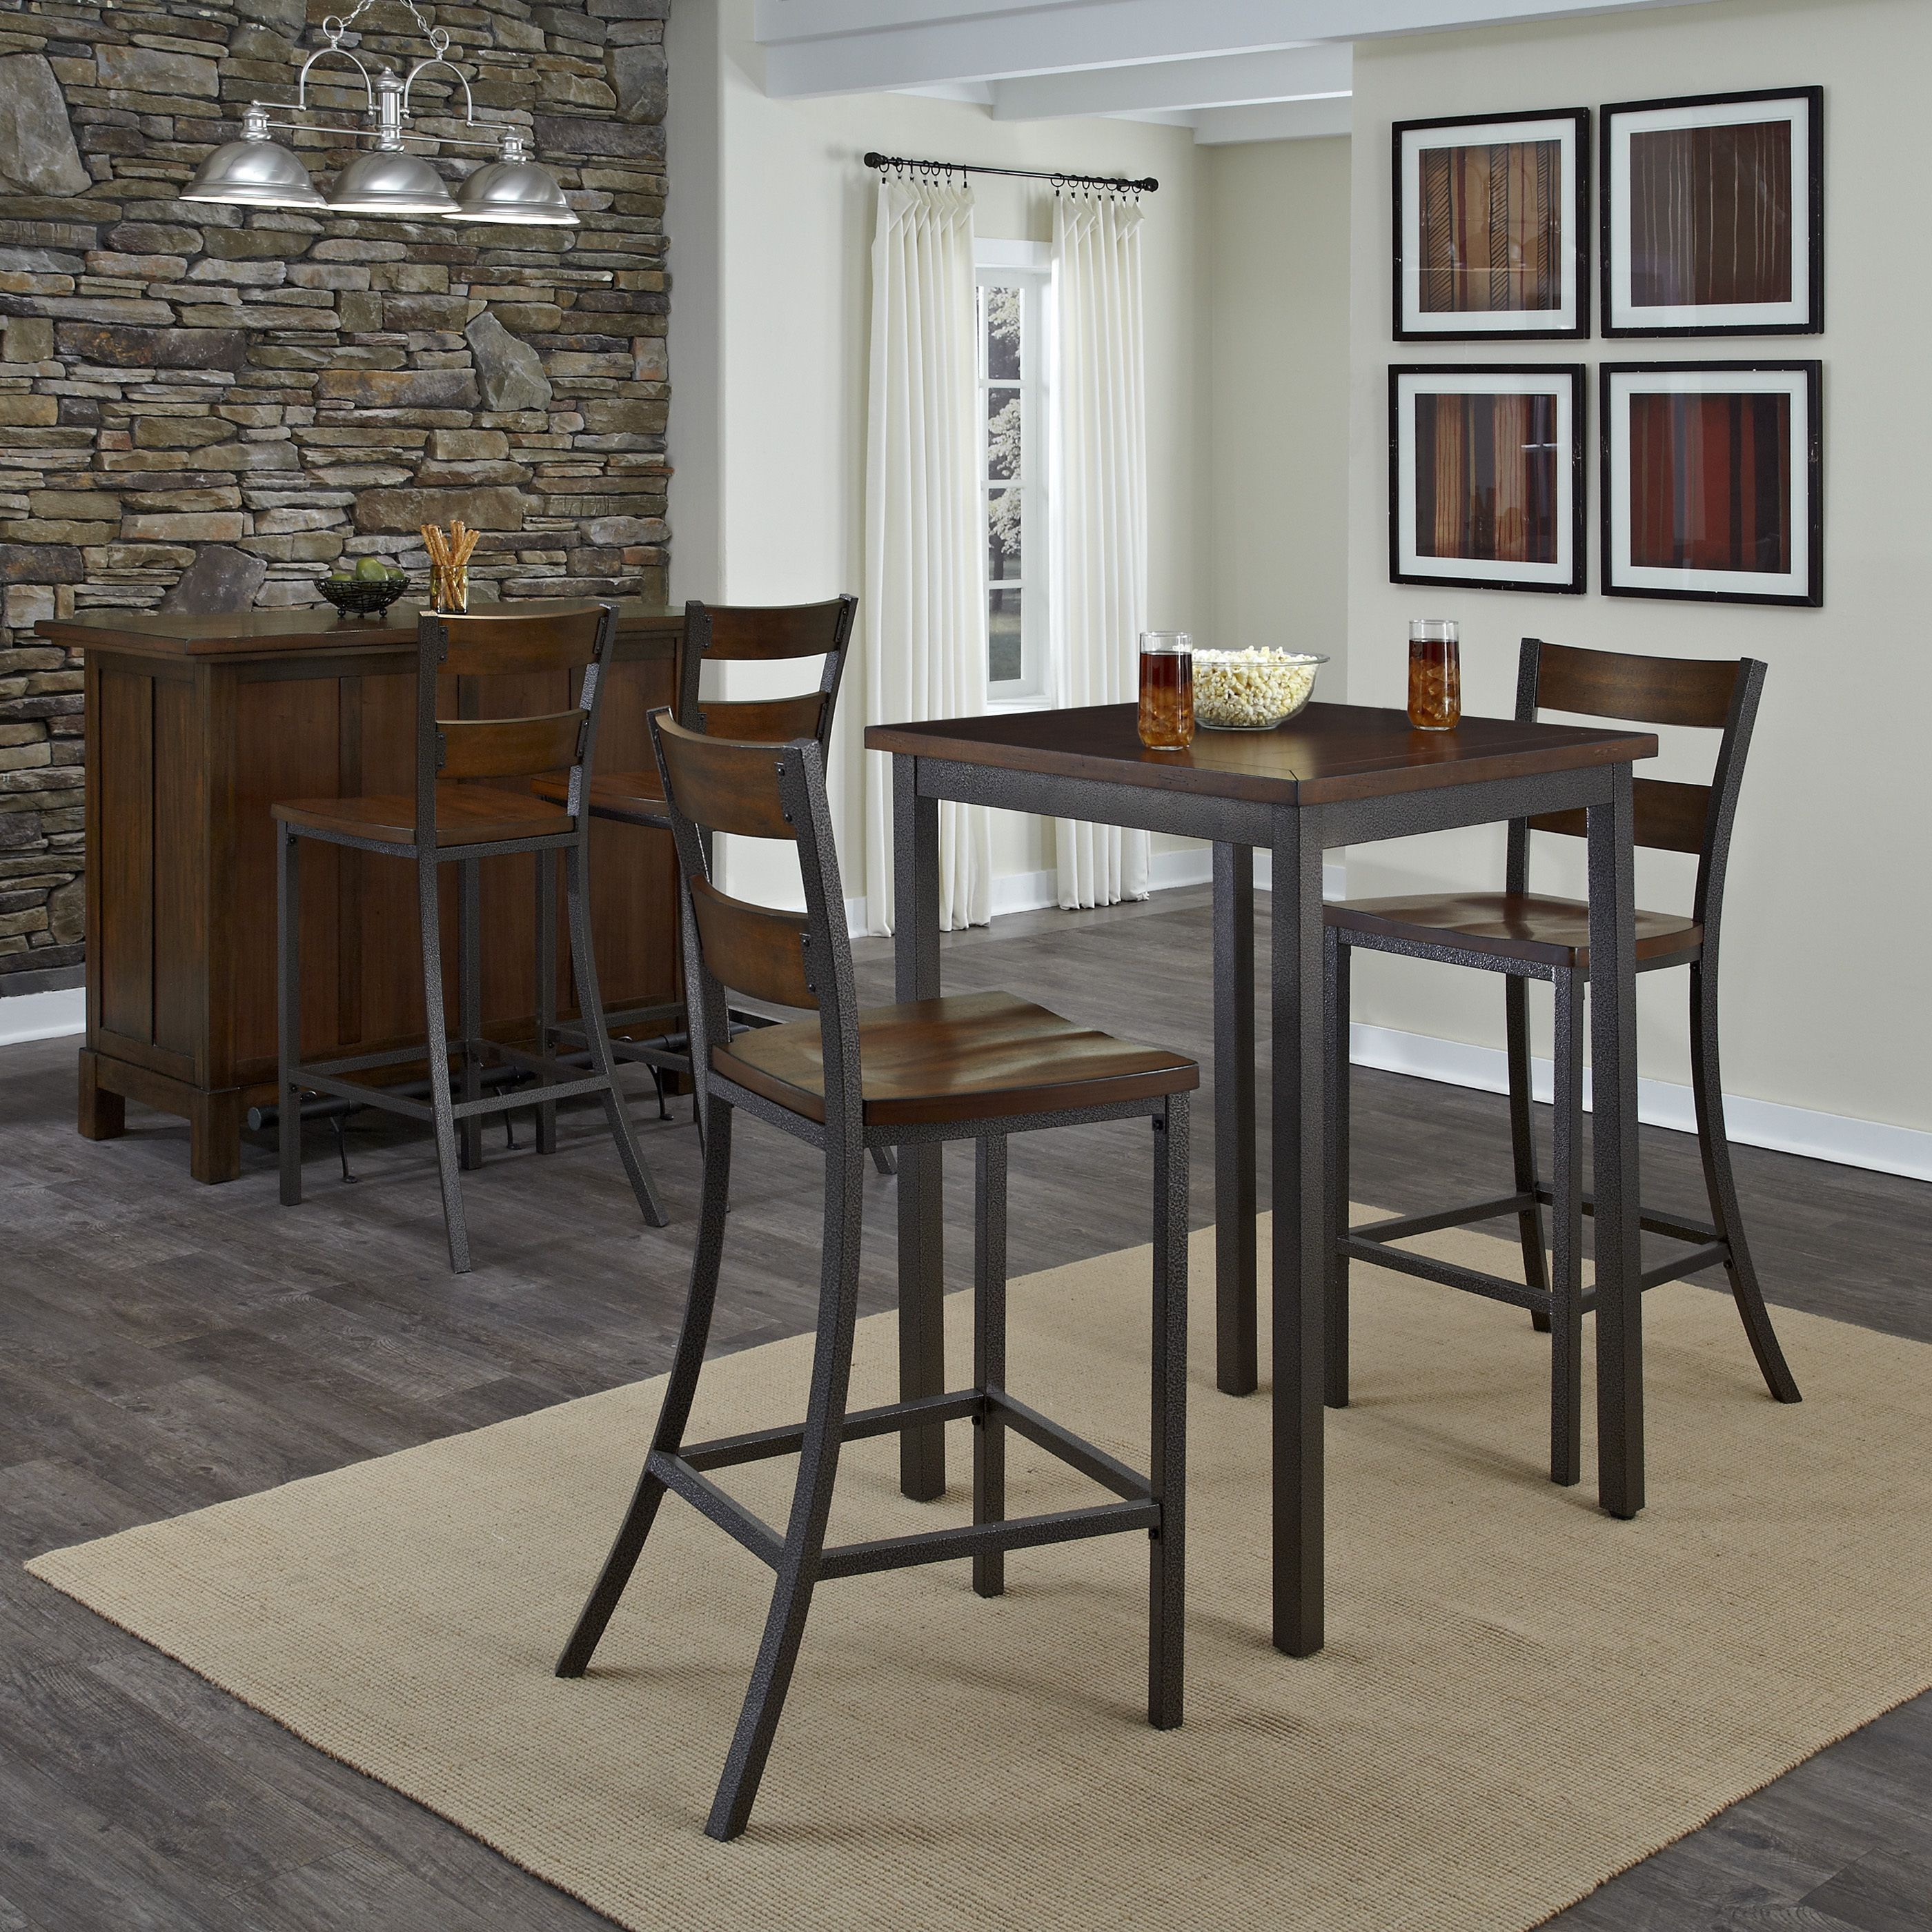 Pub Dining Set 3 Piece Table and Chairs Set Breakfast Kitchen ...